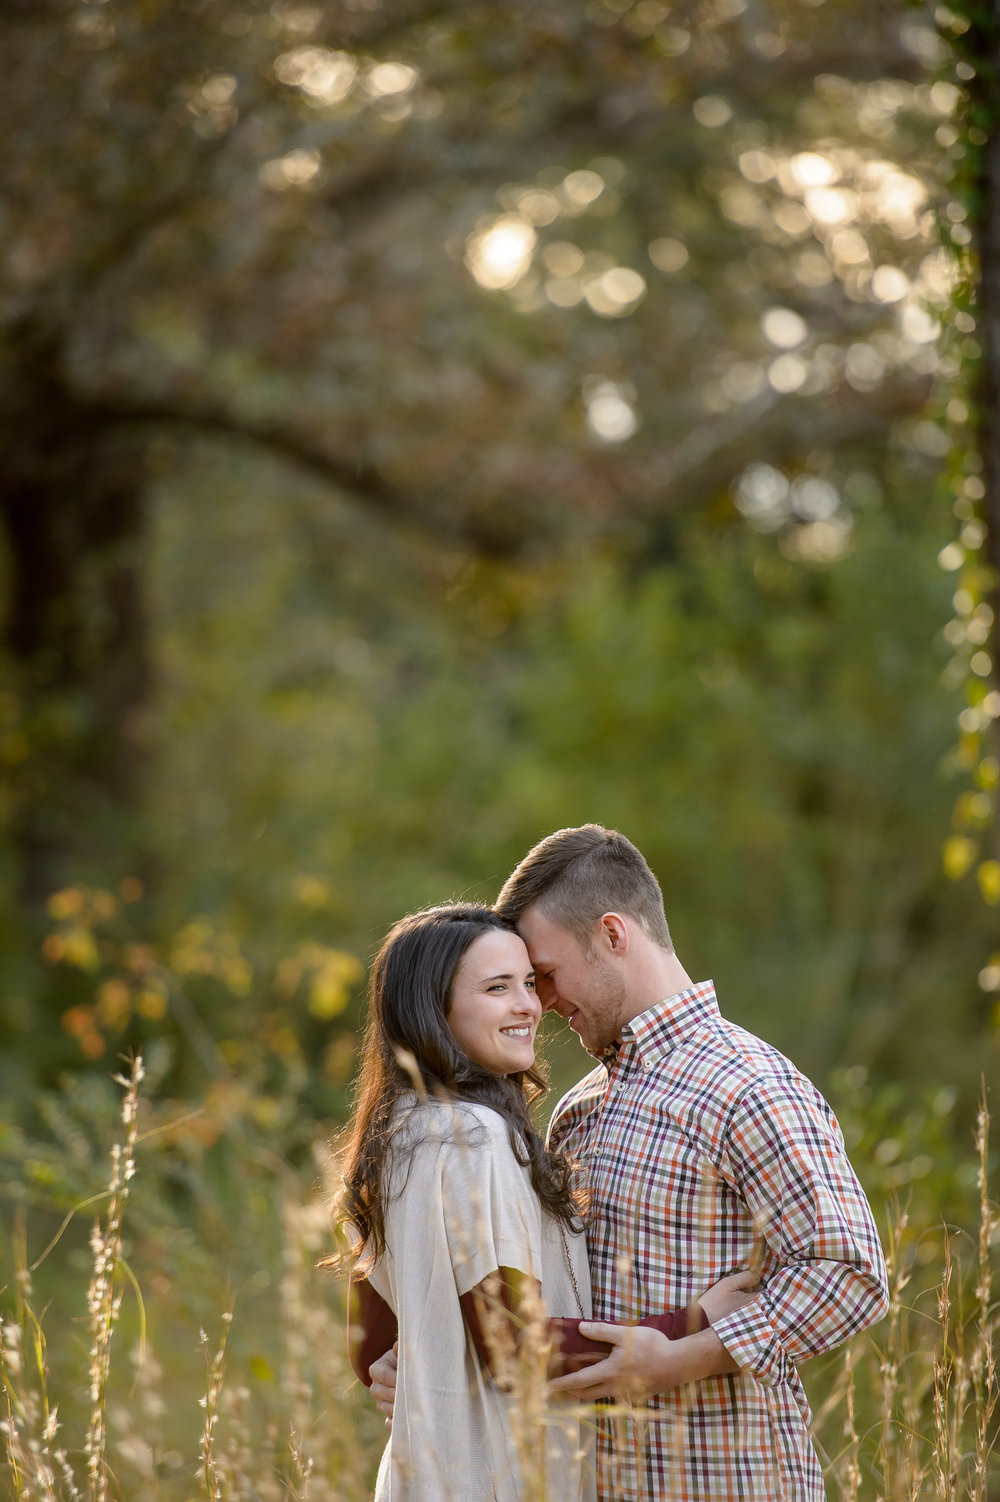 Outdoor engagement session-4.JPG